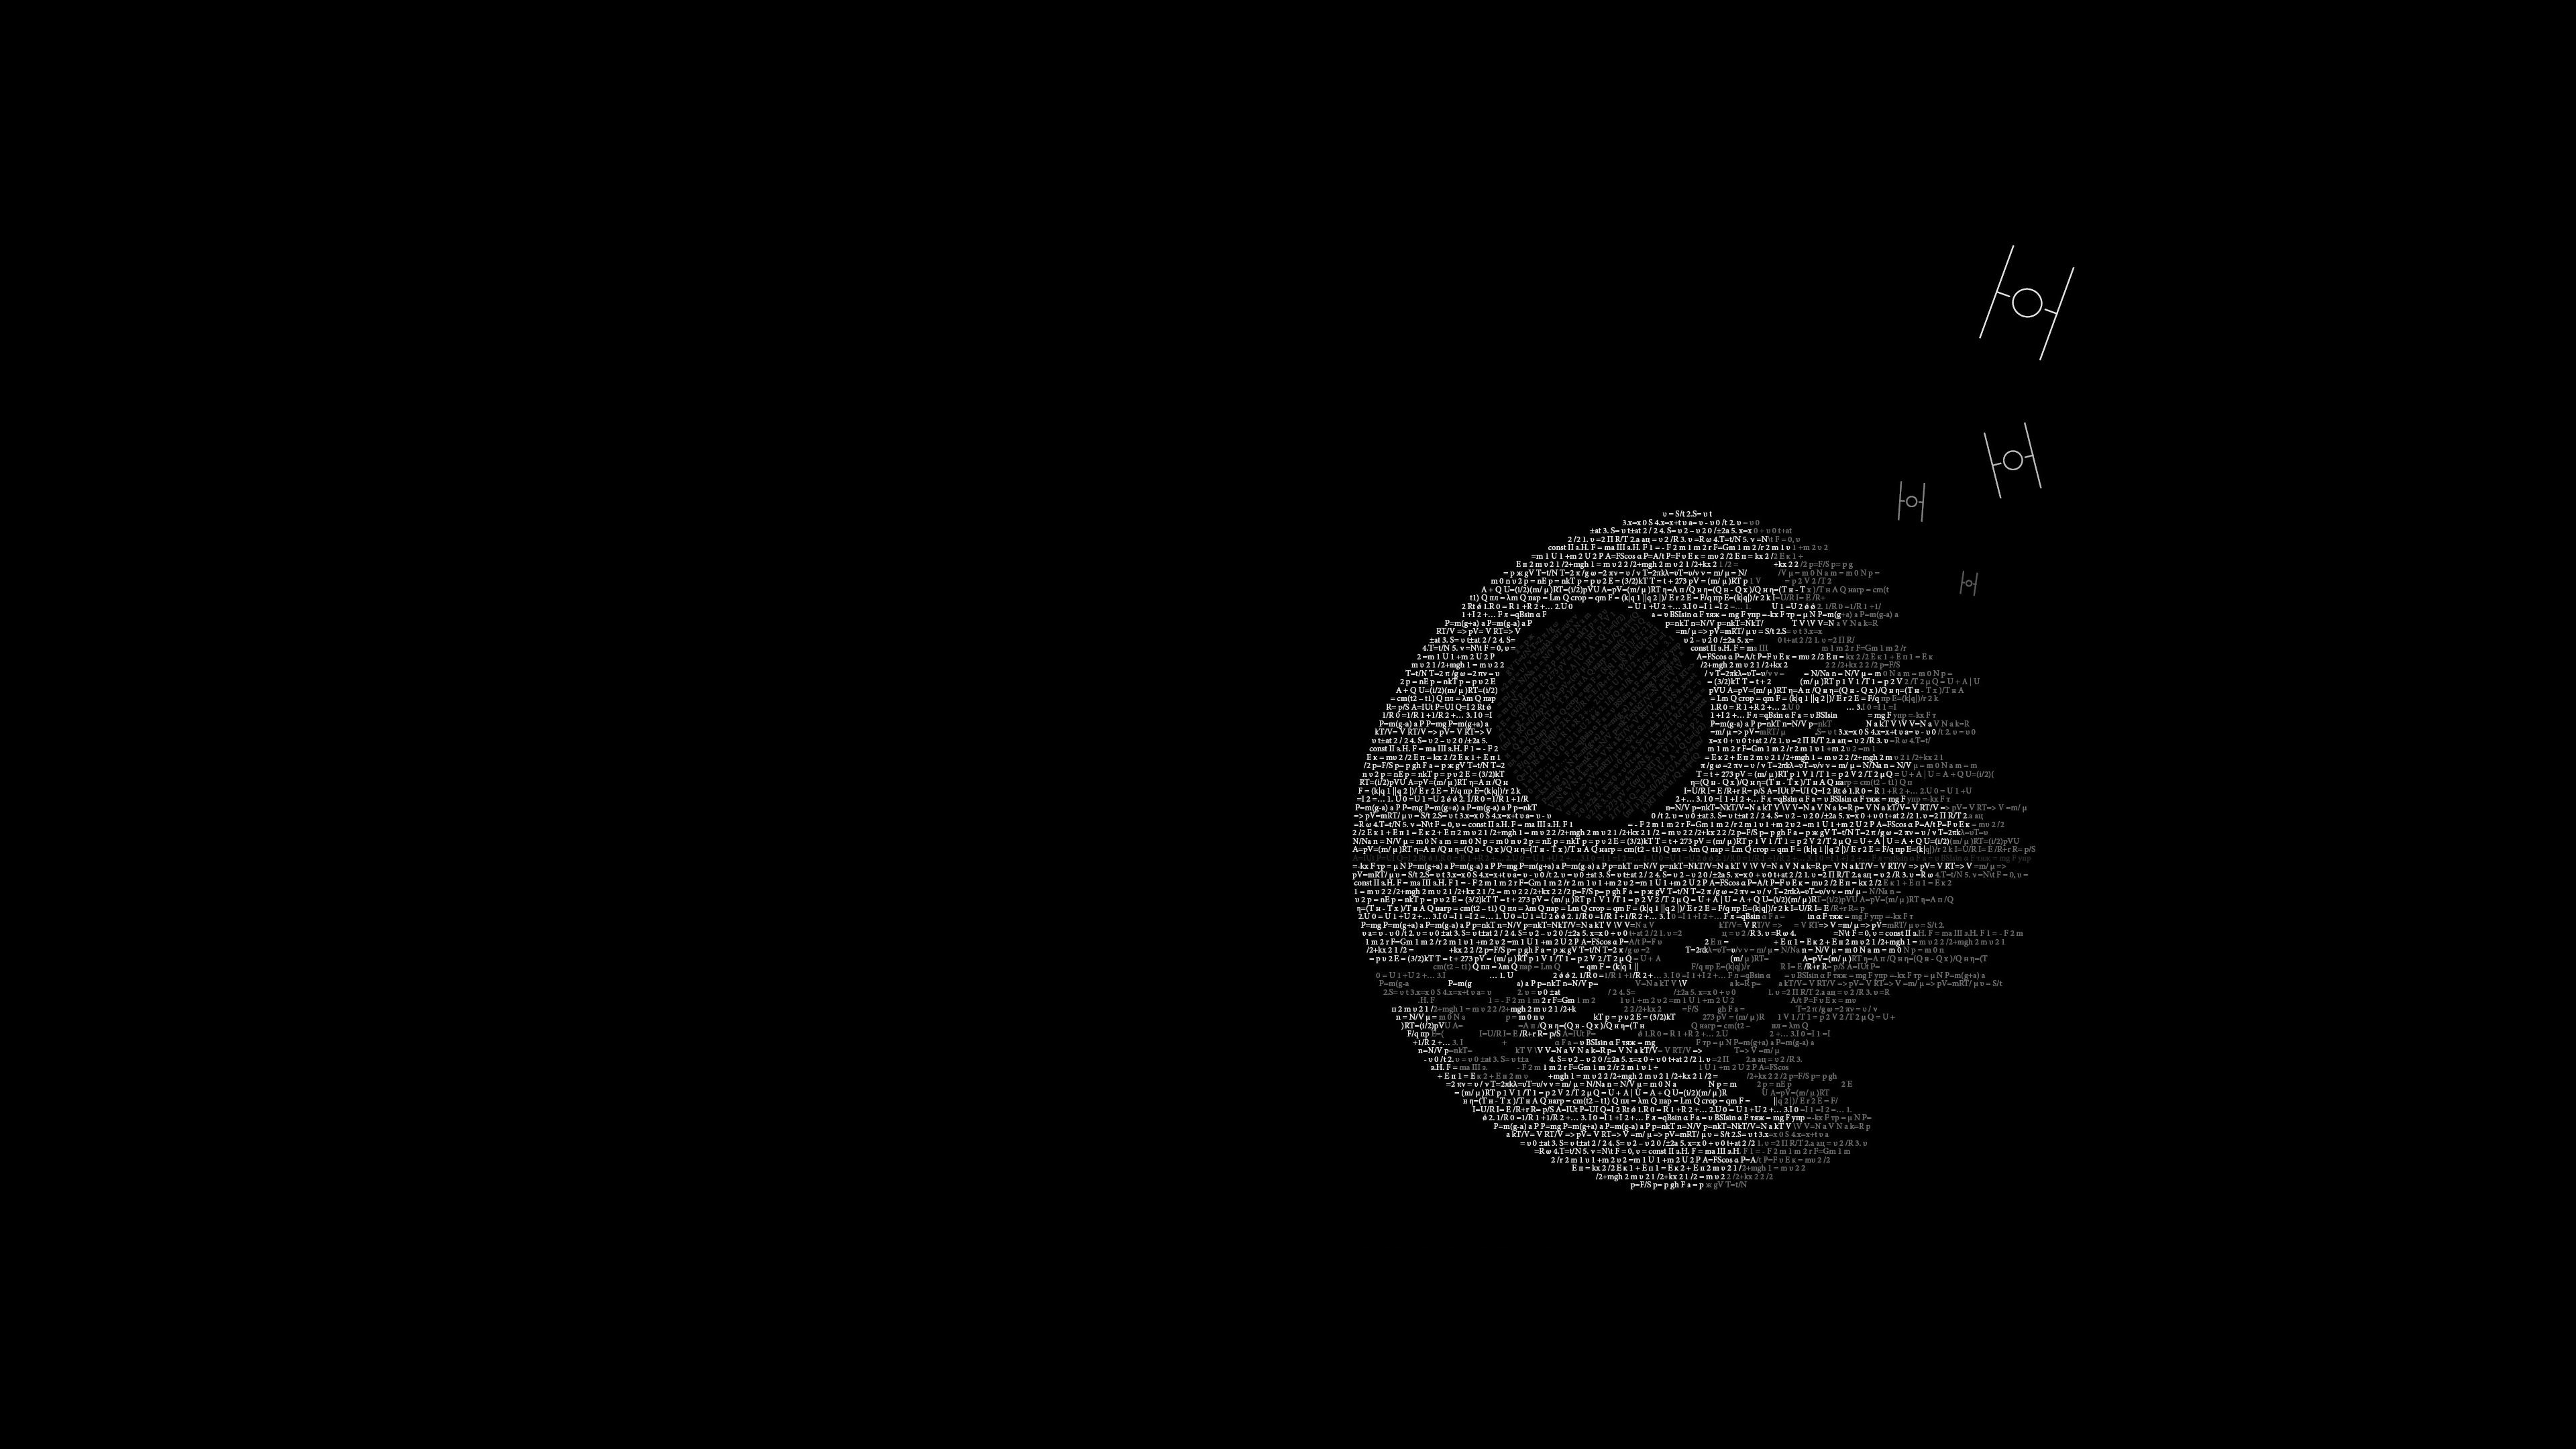 Death Star Wallpaper 4k Posted By Michelle Sellers